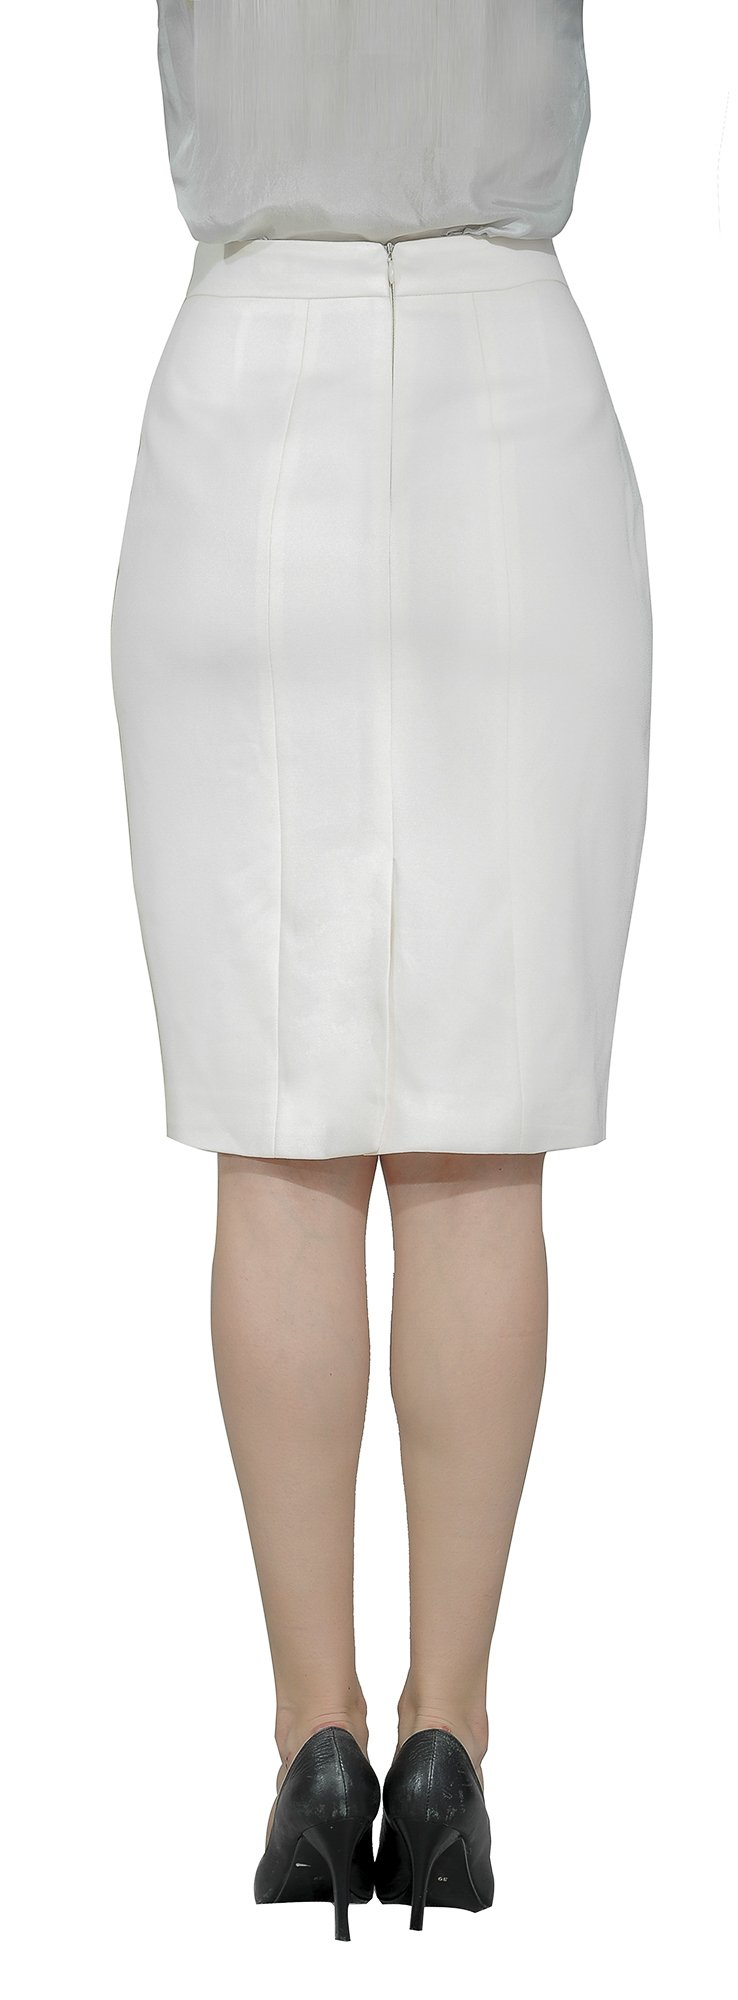 Marycrafts Women's Lined Pencil Skirt 4 Work Business Office 10 Beige by Marycrafts (Image #5)